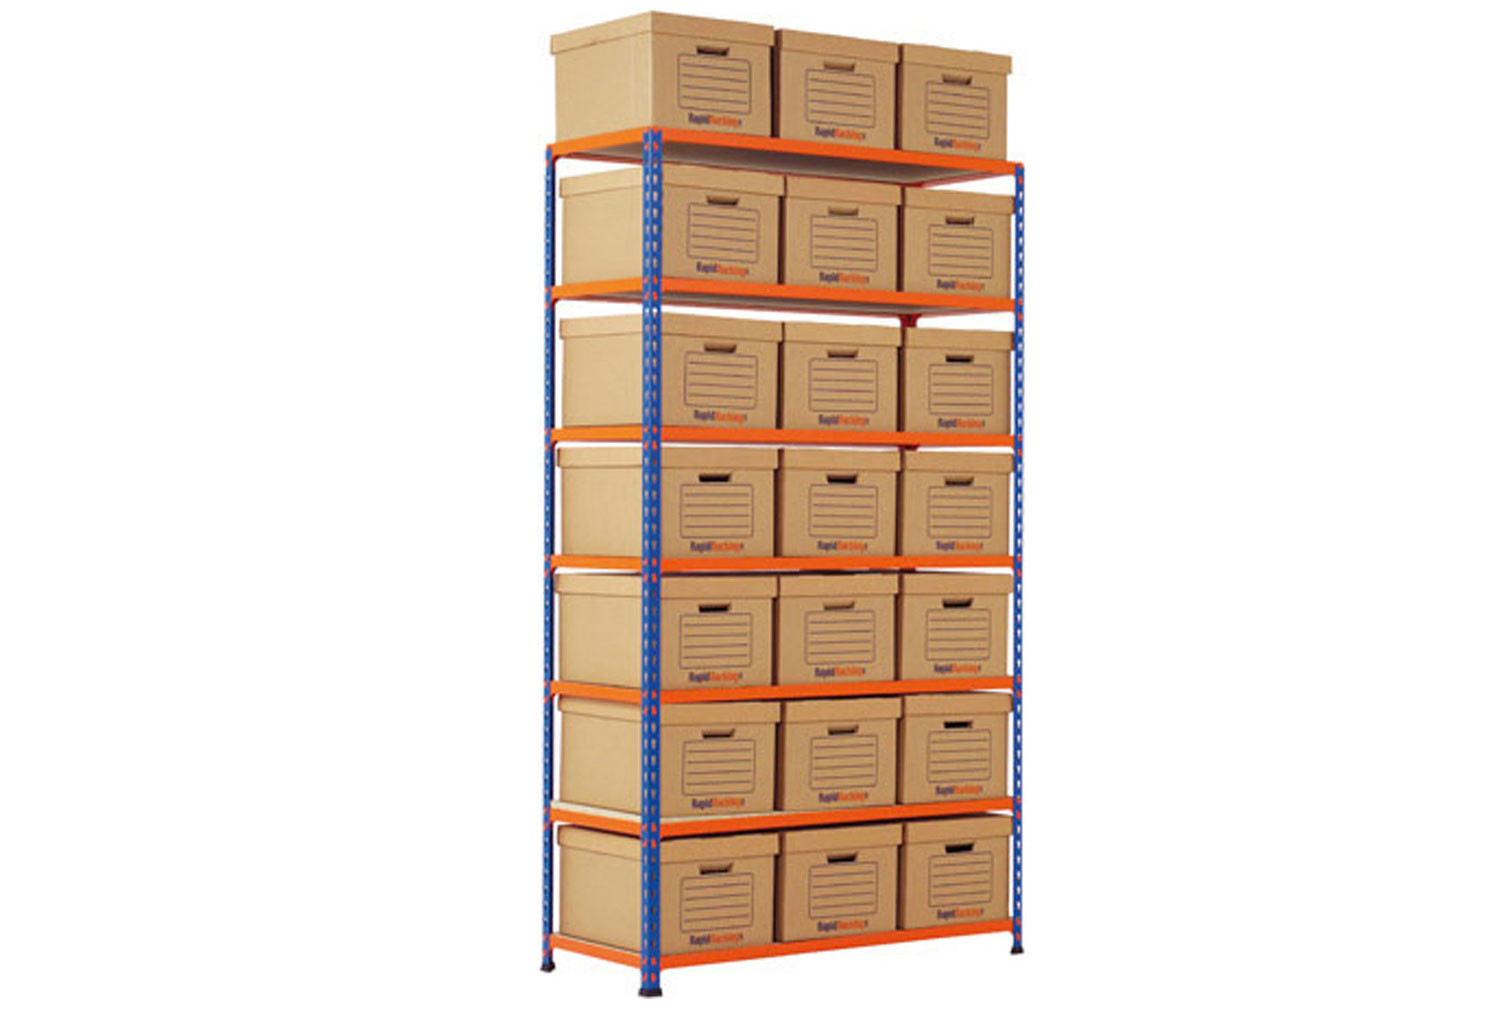 Rapid 2 single sided storage bay with 21 brown document boxes